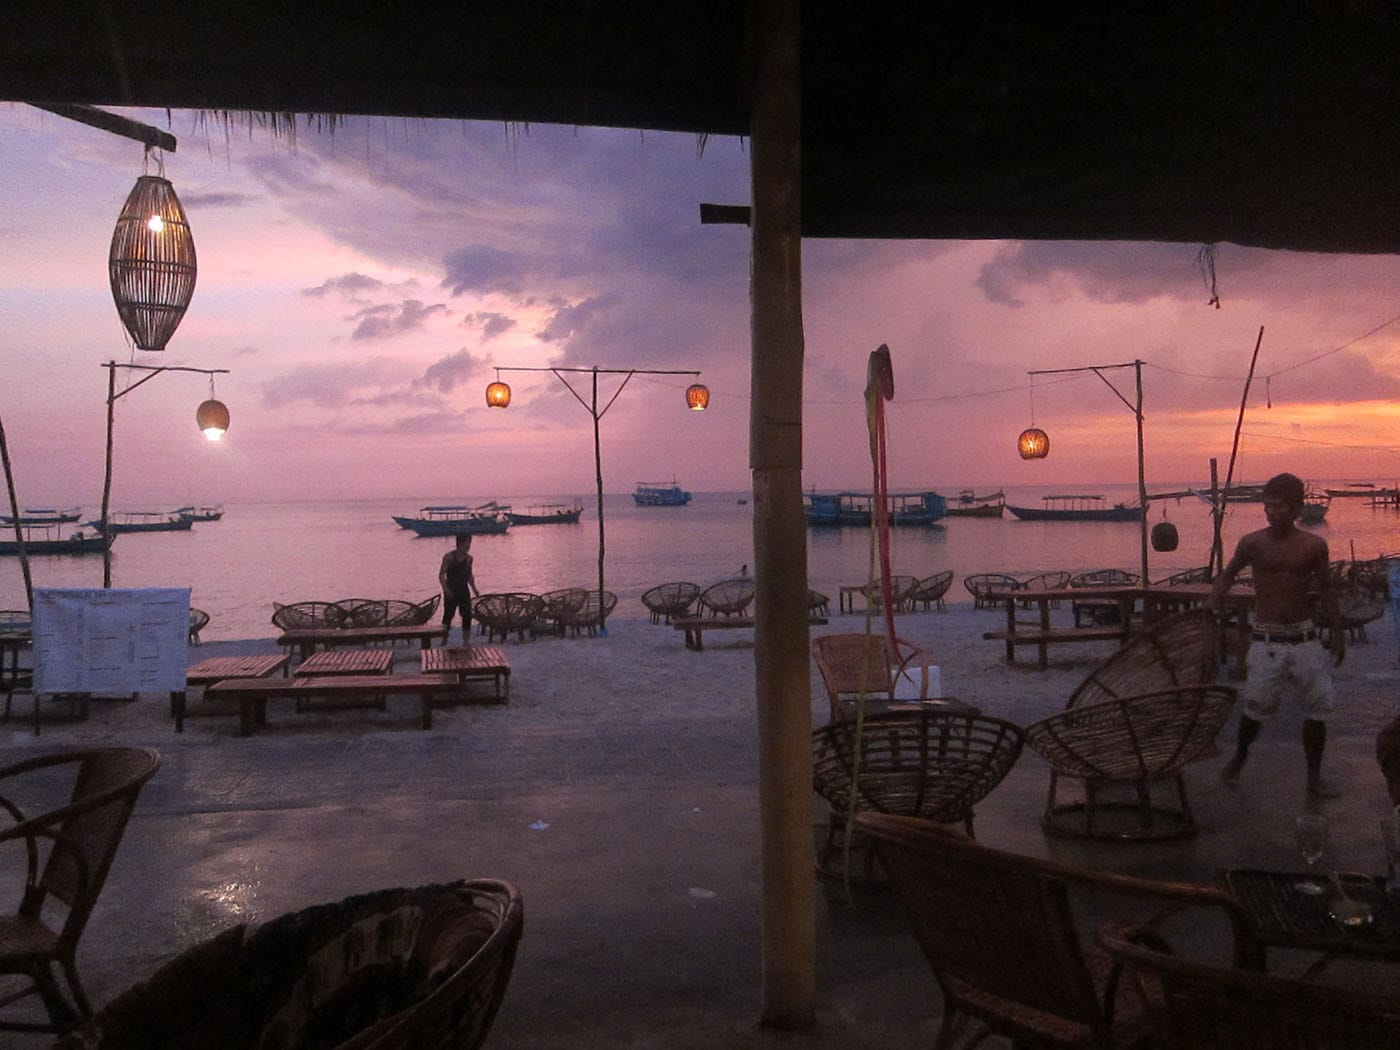 Sunset in Sihanoukville, Cambodia